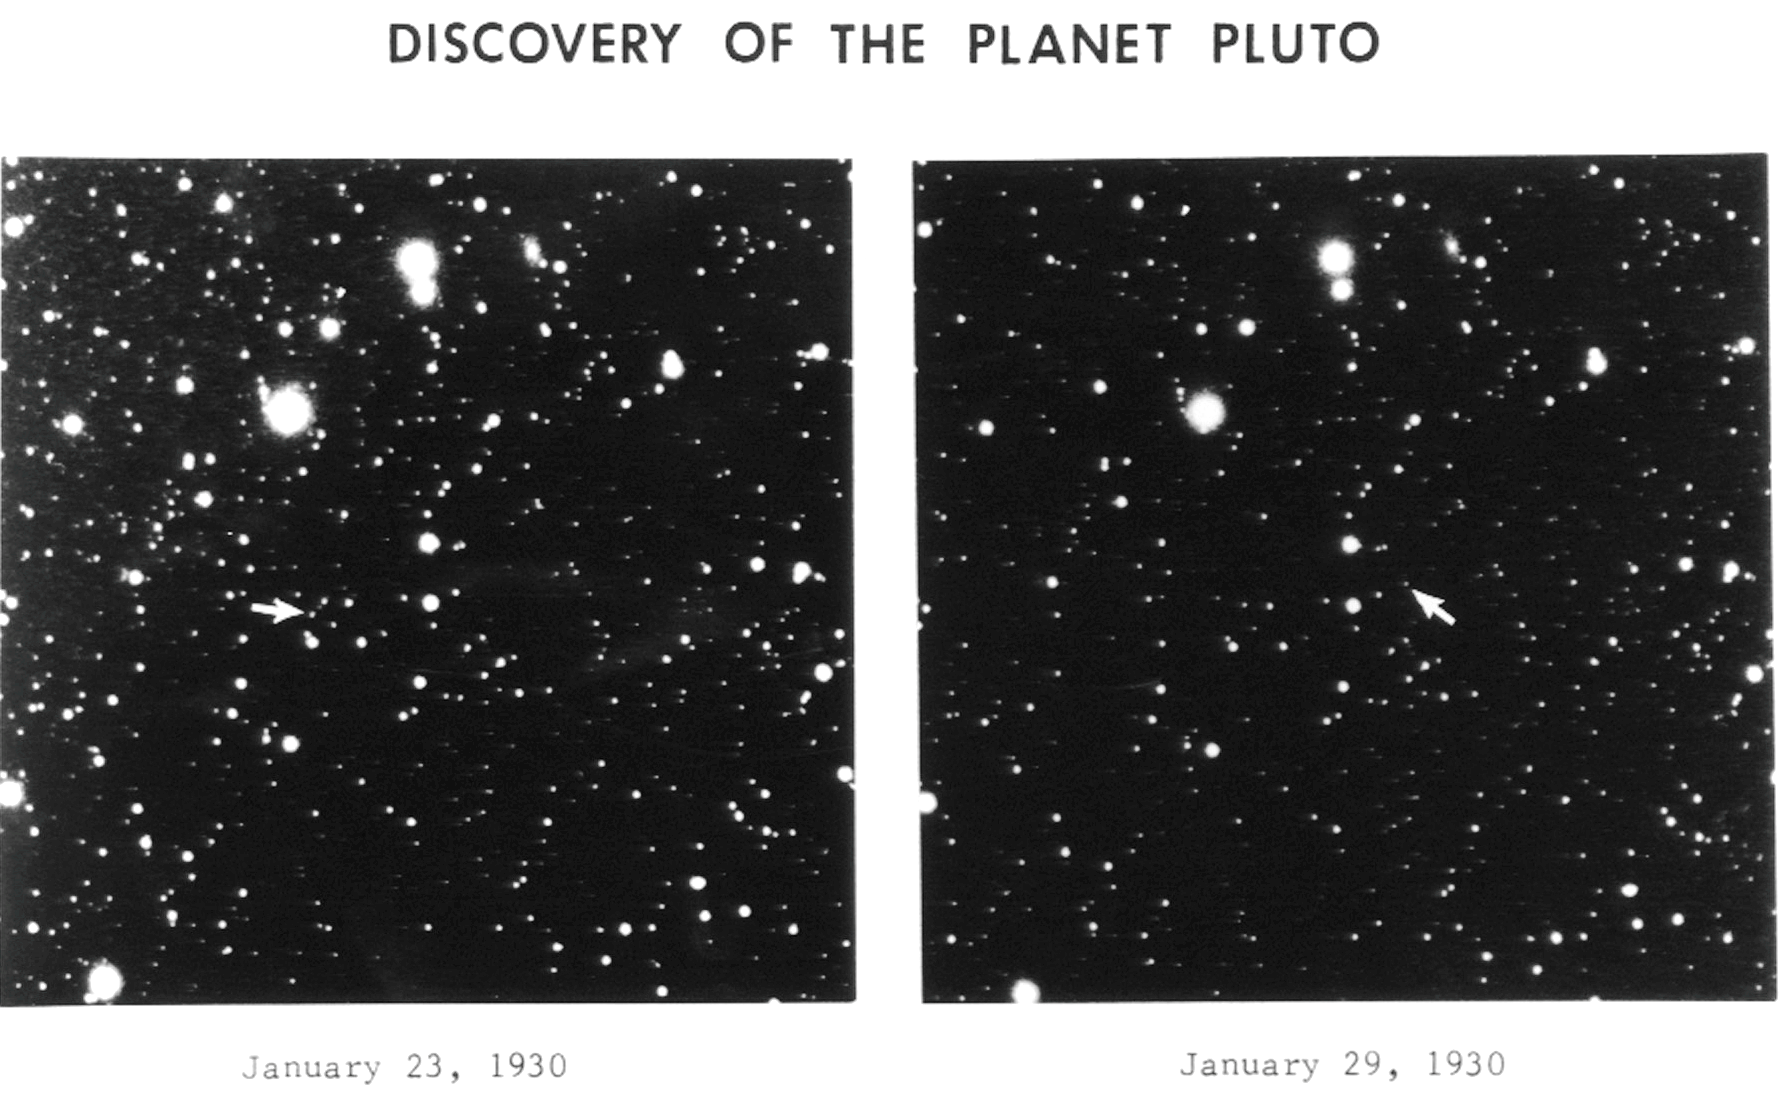 Pluto_discovery_plates.png